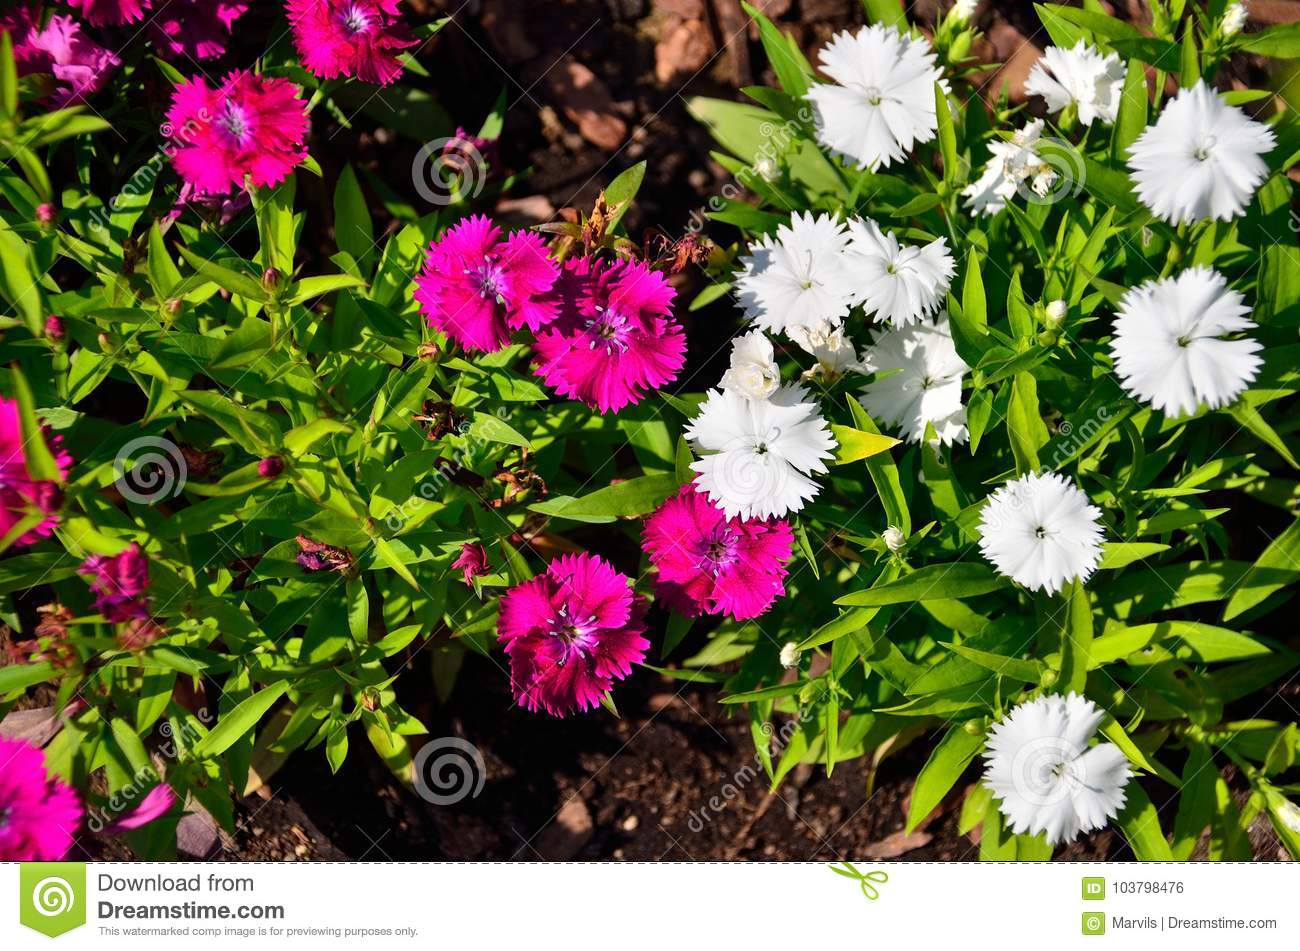 Small purple and white flowers stock photo image of spring download small purple and white flowers stock photo image of spring background 103798476 mightylinksfo